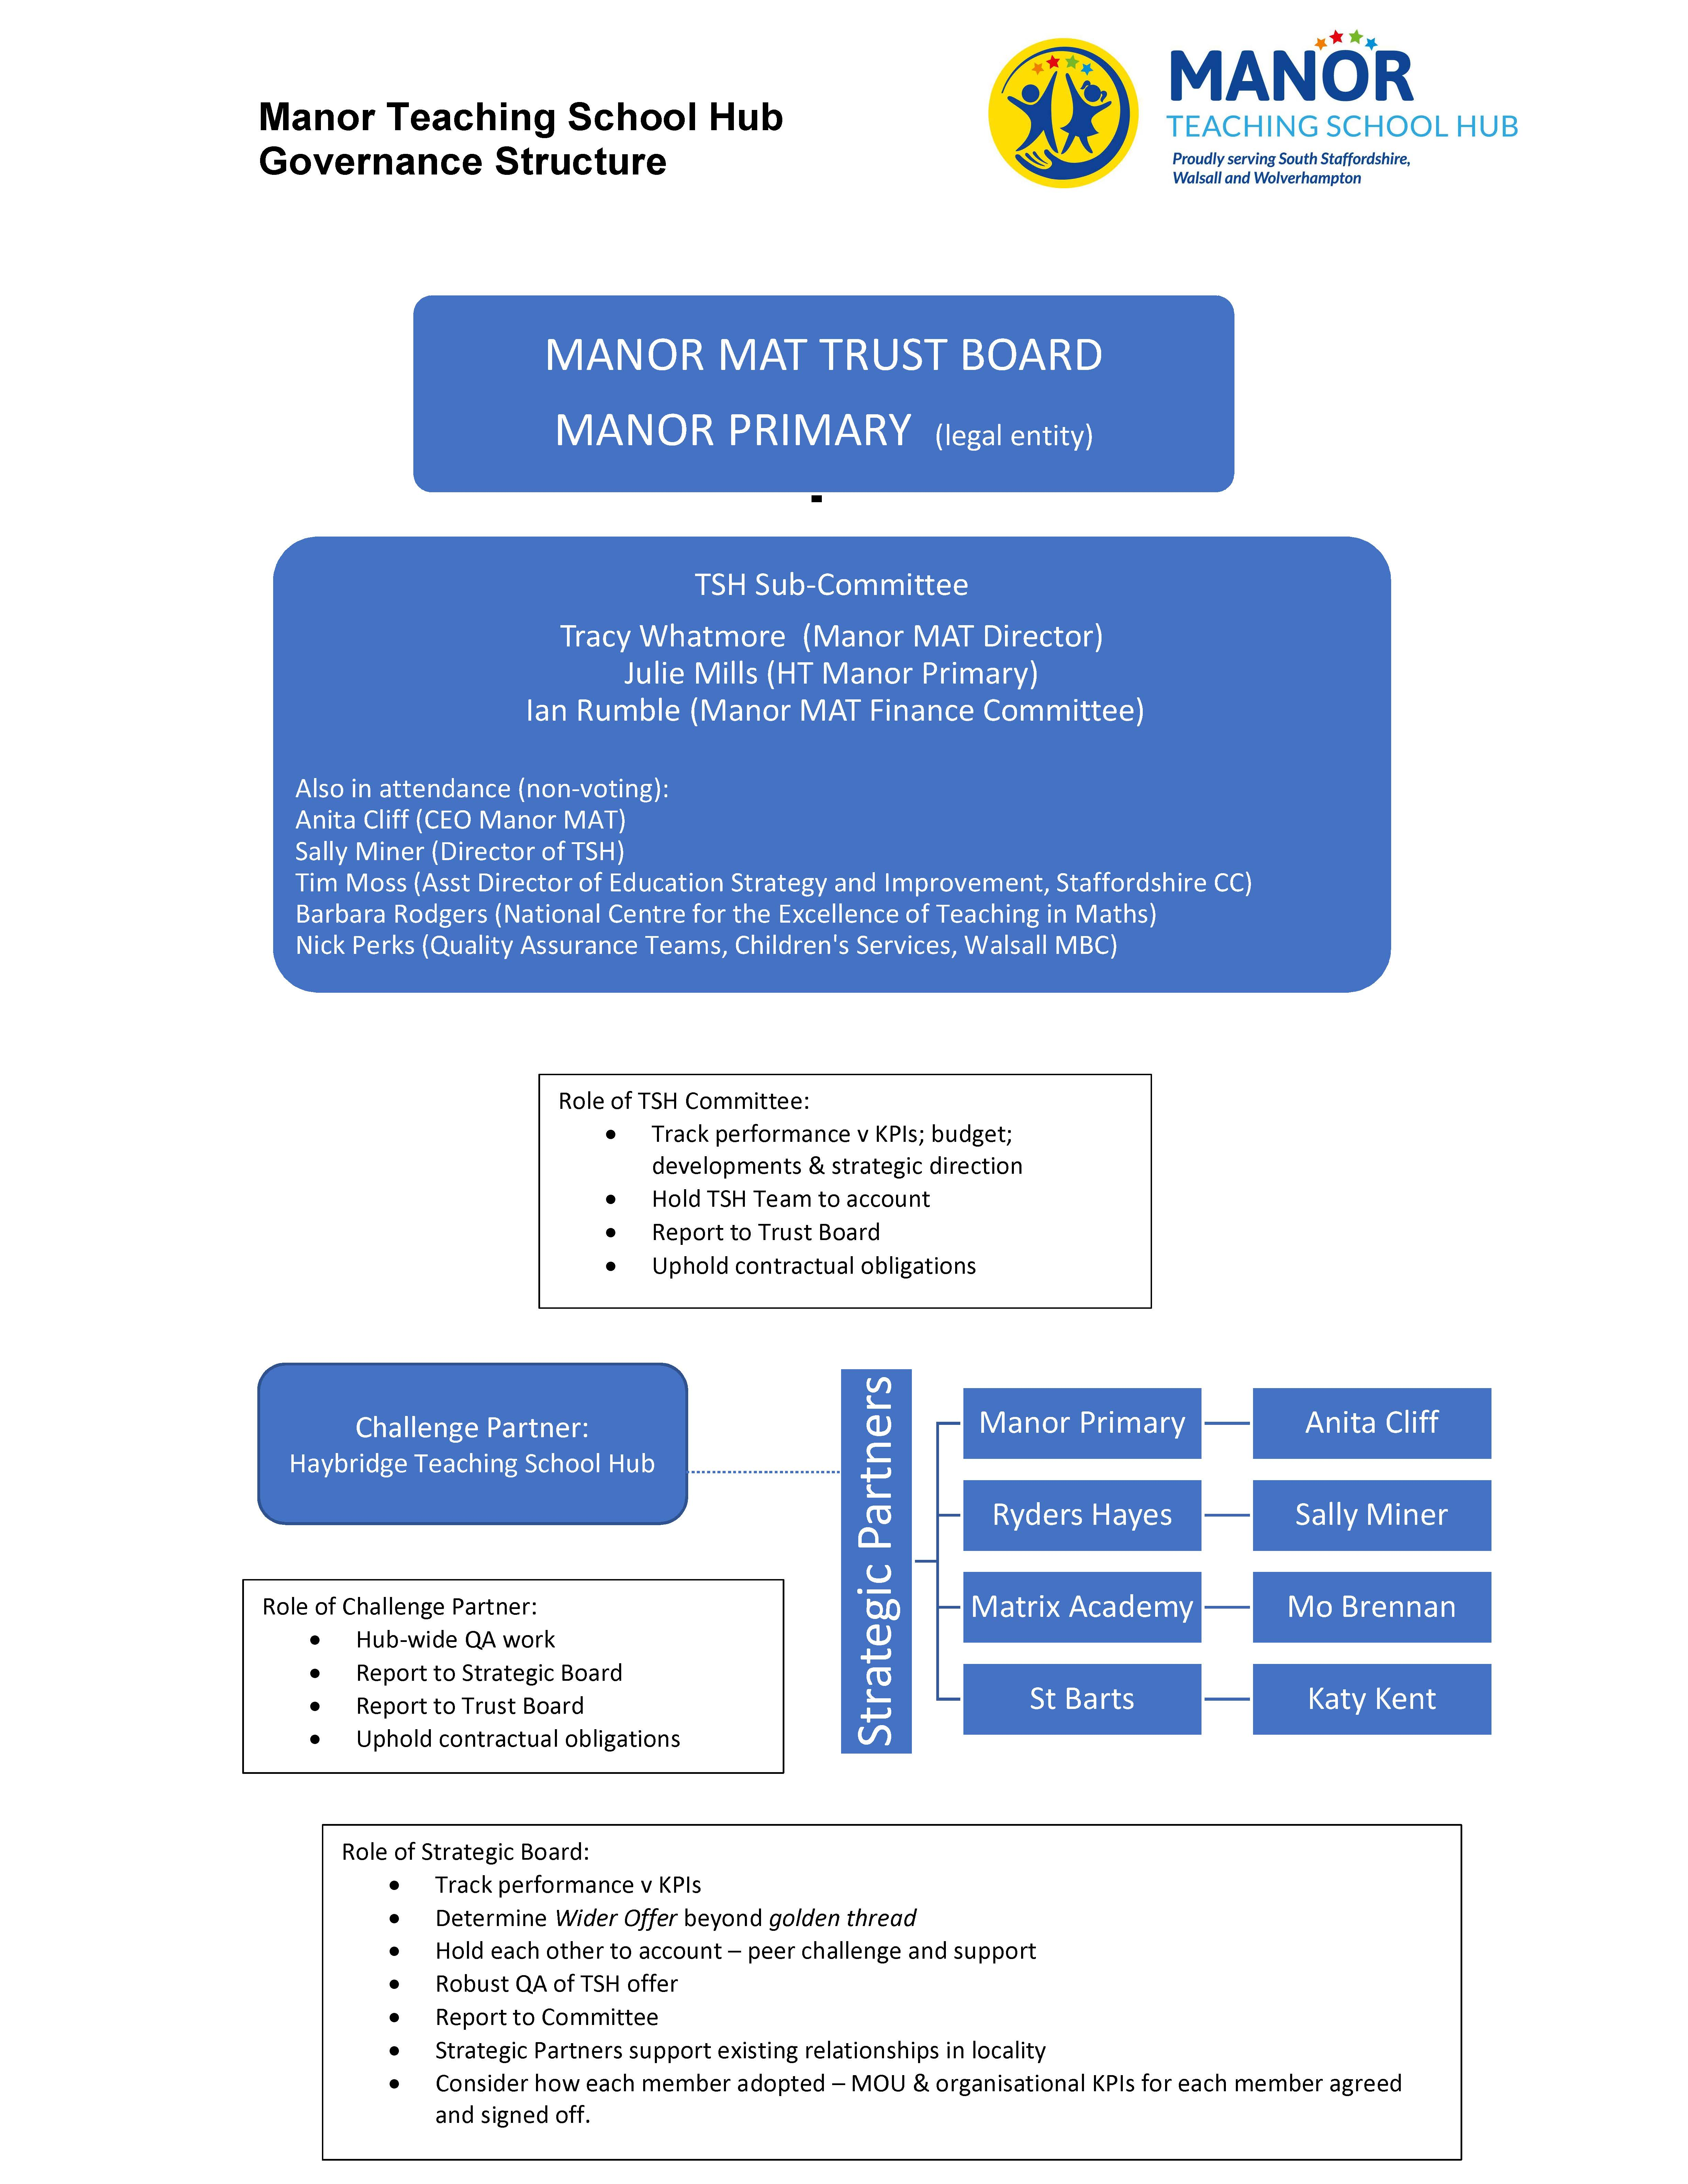 Governance structure as at 25.6.21